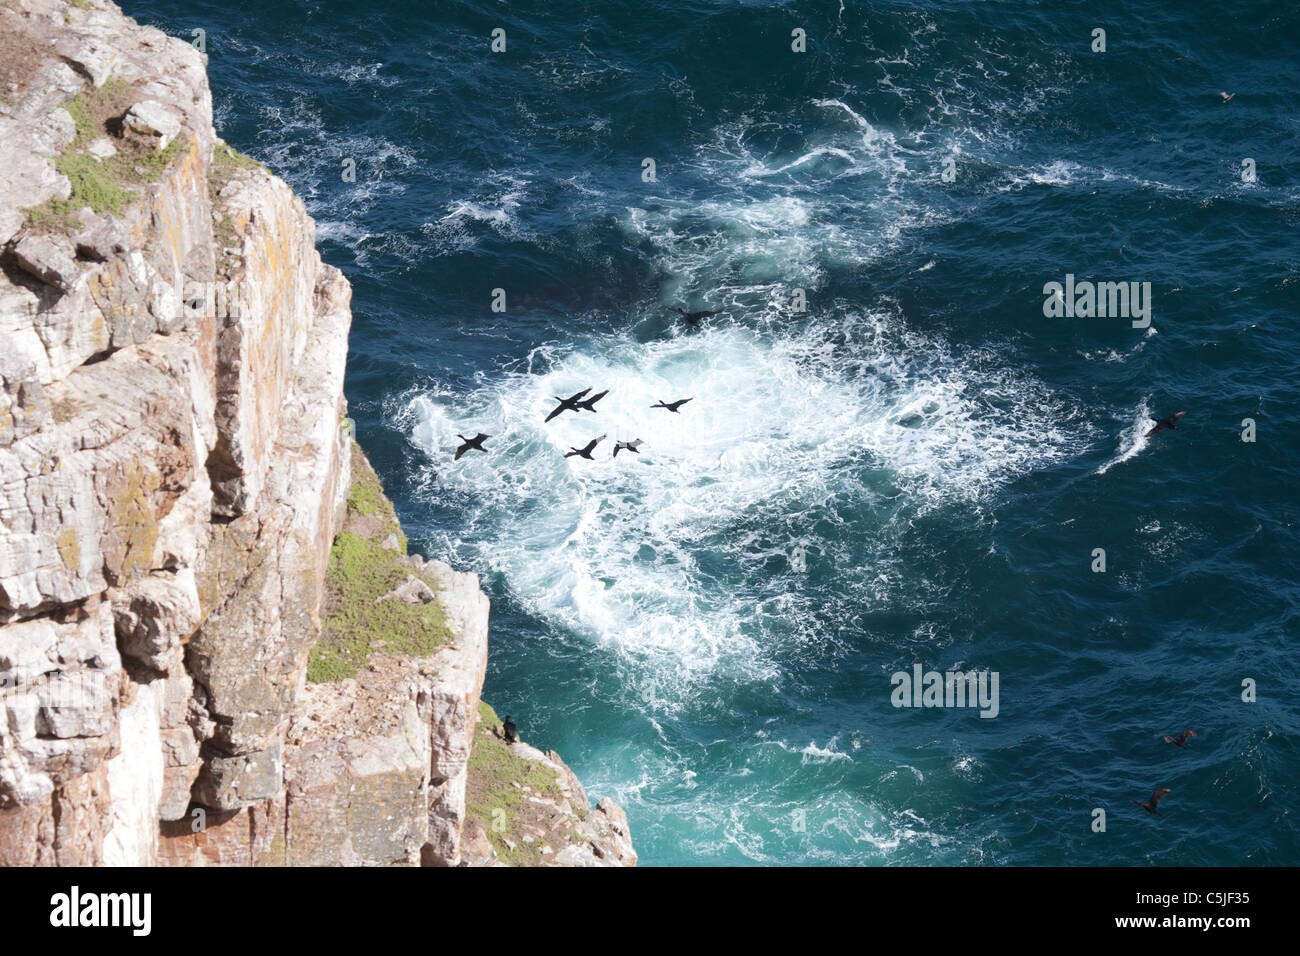 Flog of cormorans at Cape Point South Africa - Stock Image